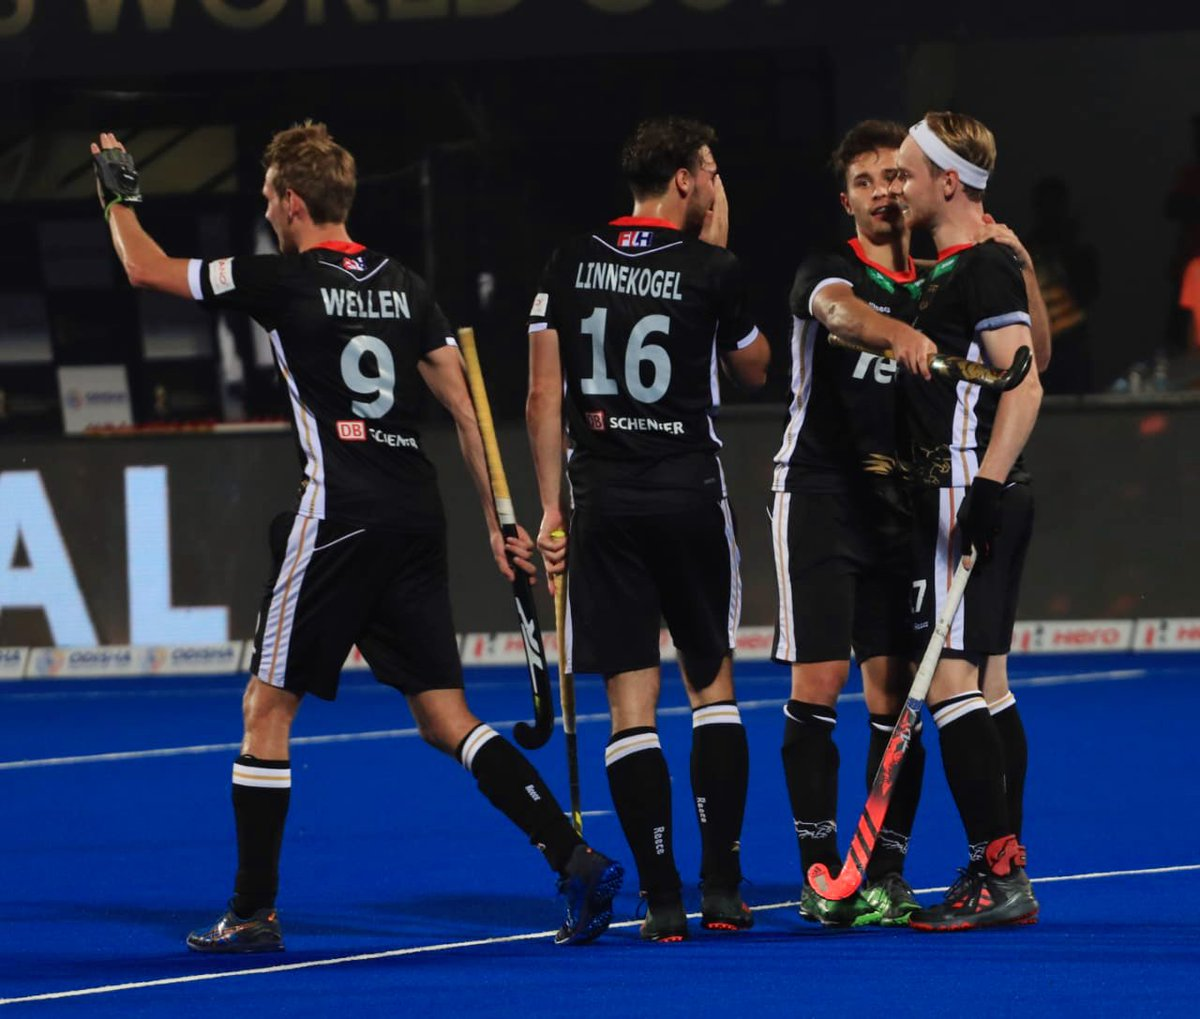 Hockey, World Cup, Odisha, Sports, Germany, Netherlands, NewsMobile, Mobile, News, India